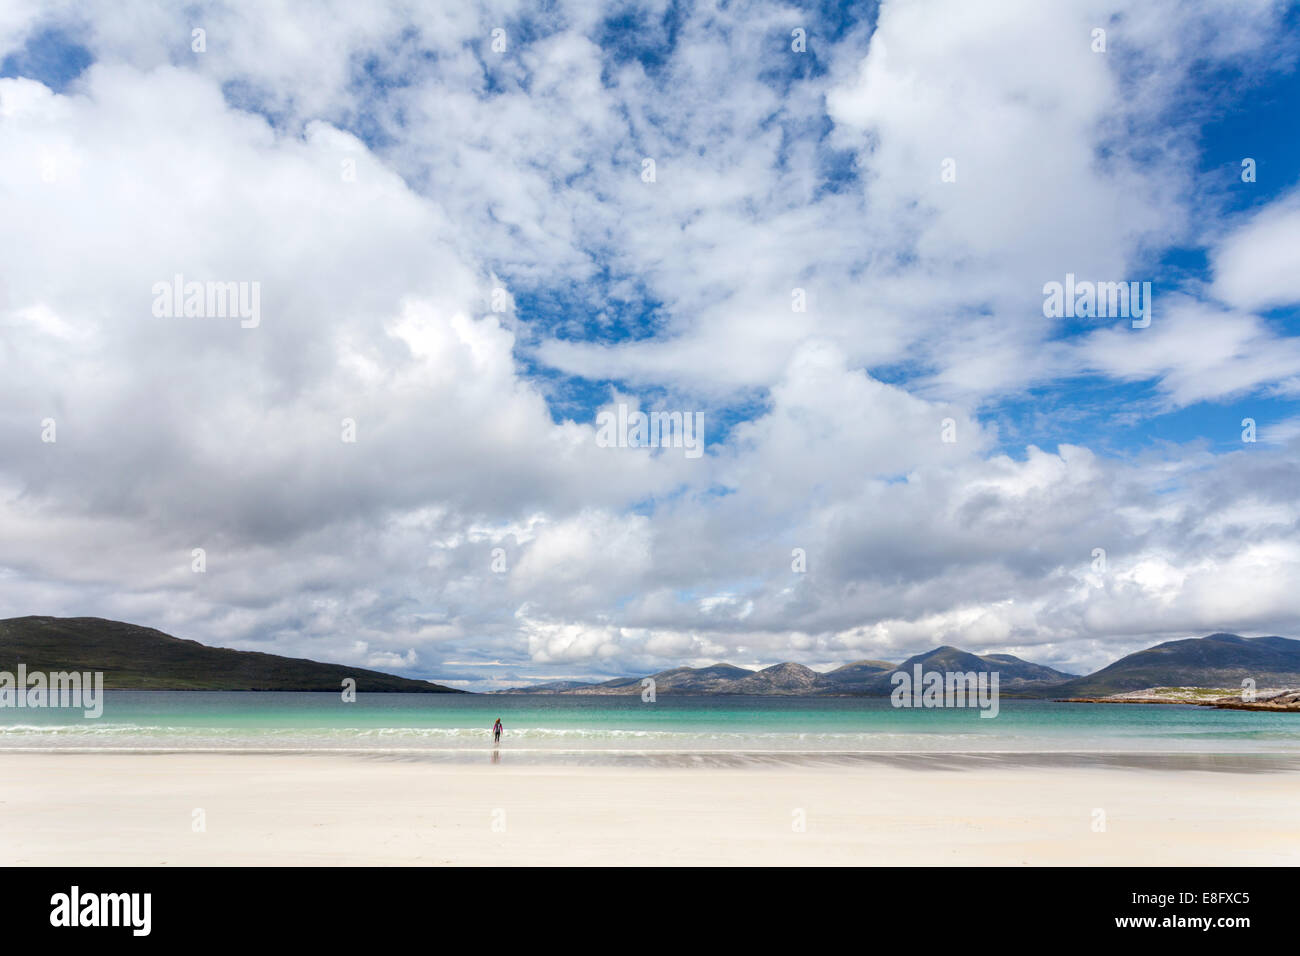 Luskentyre Beach Isle of Harris Scotland - Stock Image